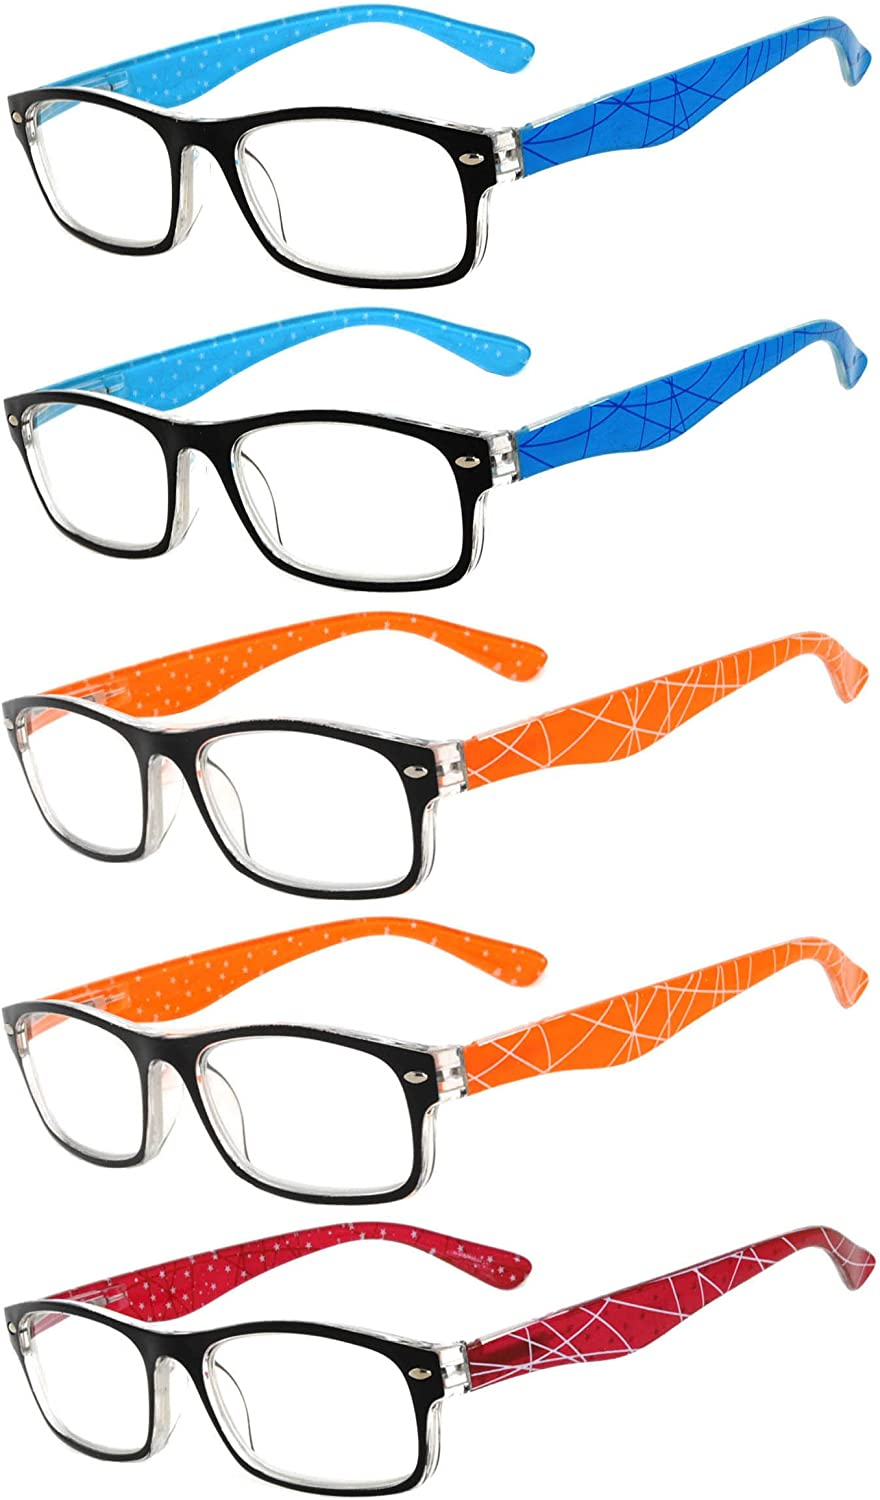 Readers 5 Pack of Elegant Womens Reading Glasses with Beautiful Patterns for Ladies Deluxe Spring Hinge Stylish Look 180 Day Guarantee +2.25